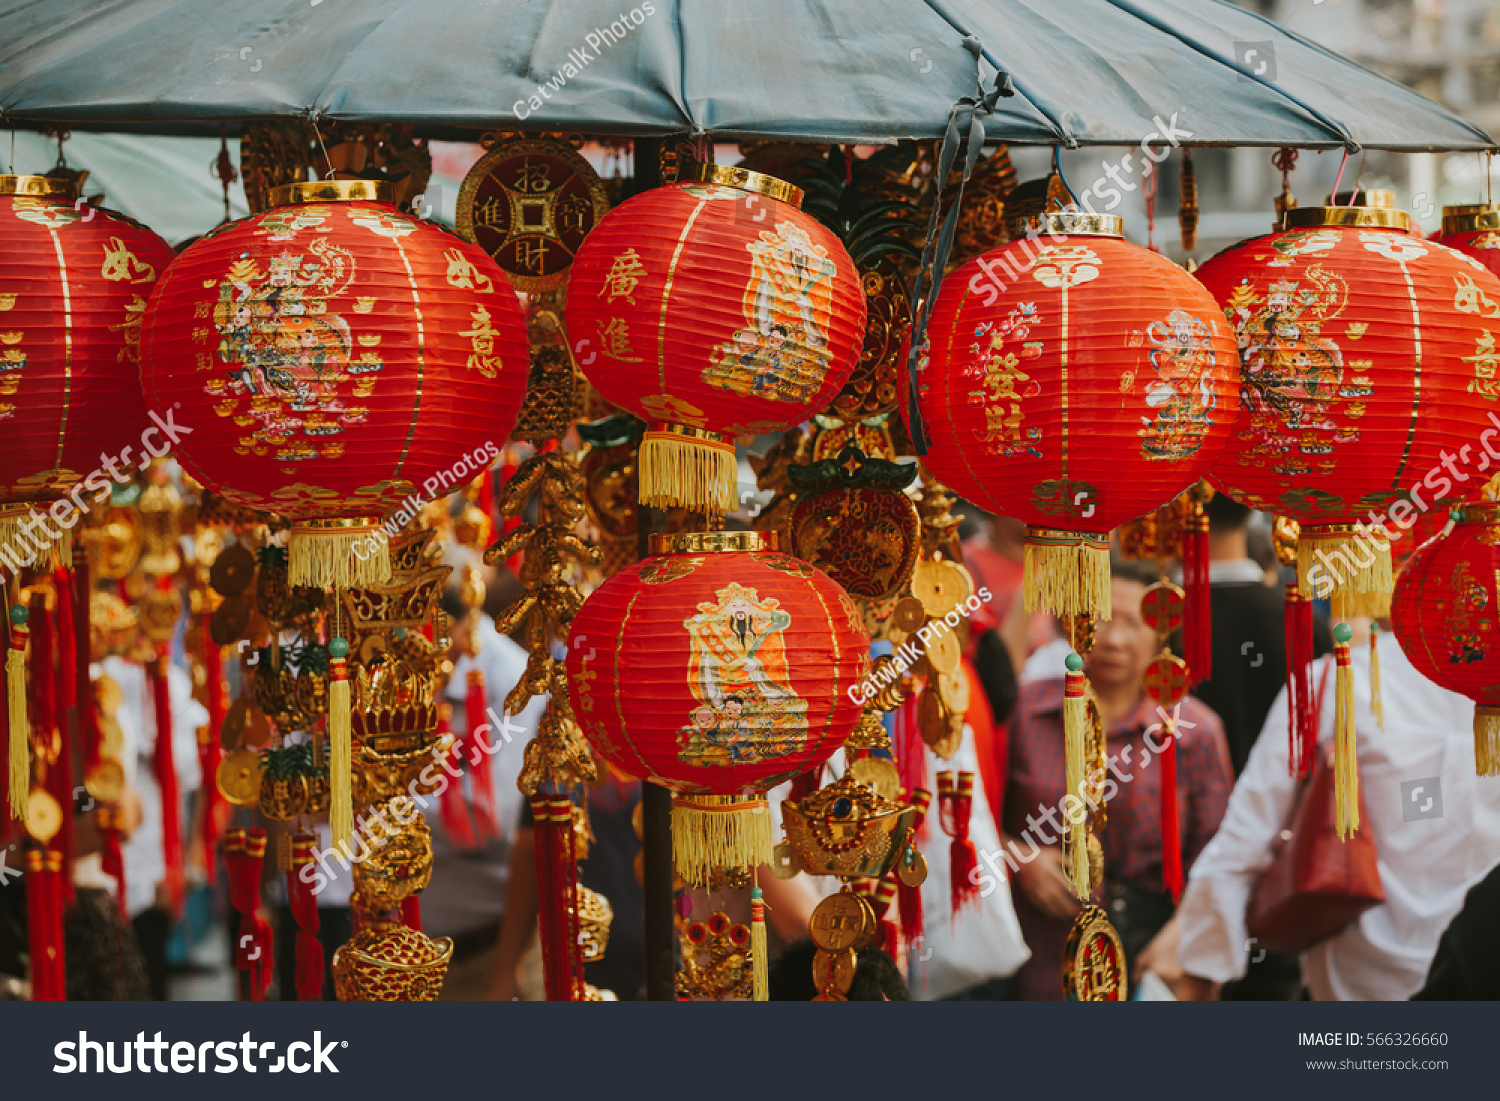 chinese new year 2017 decorations stock photo 566326660 shutterstock. Black Bedroom Furniture Sets. Home Design Ideas